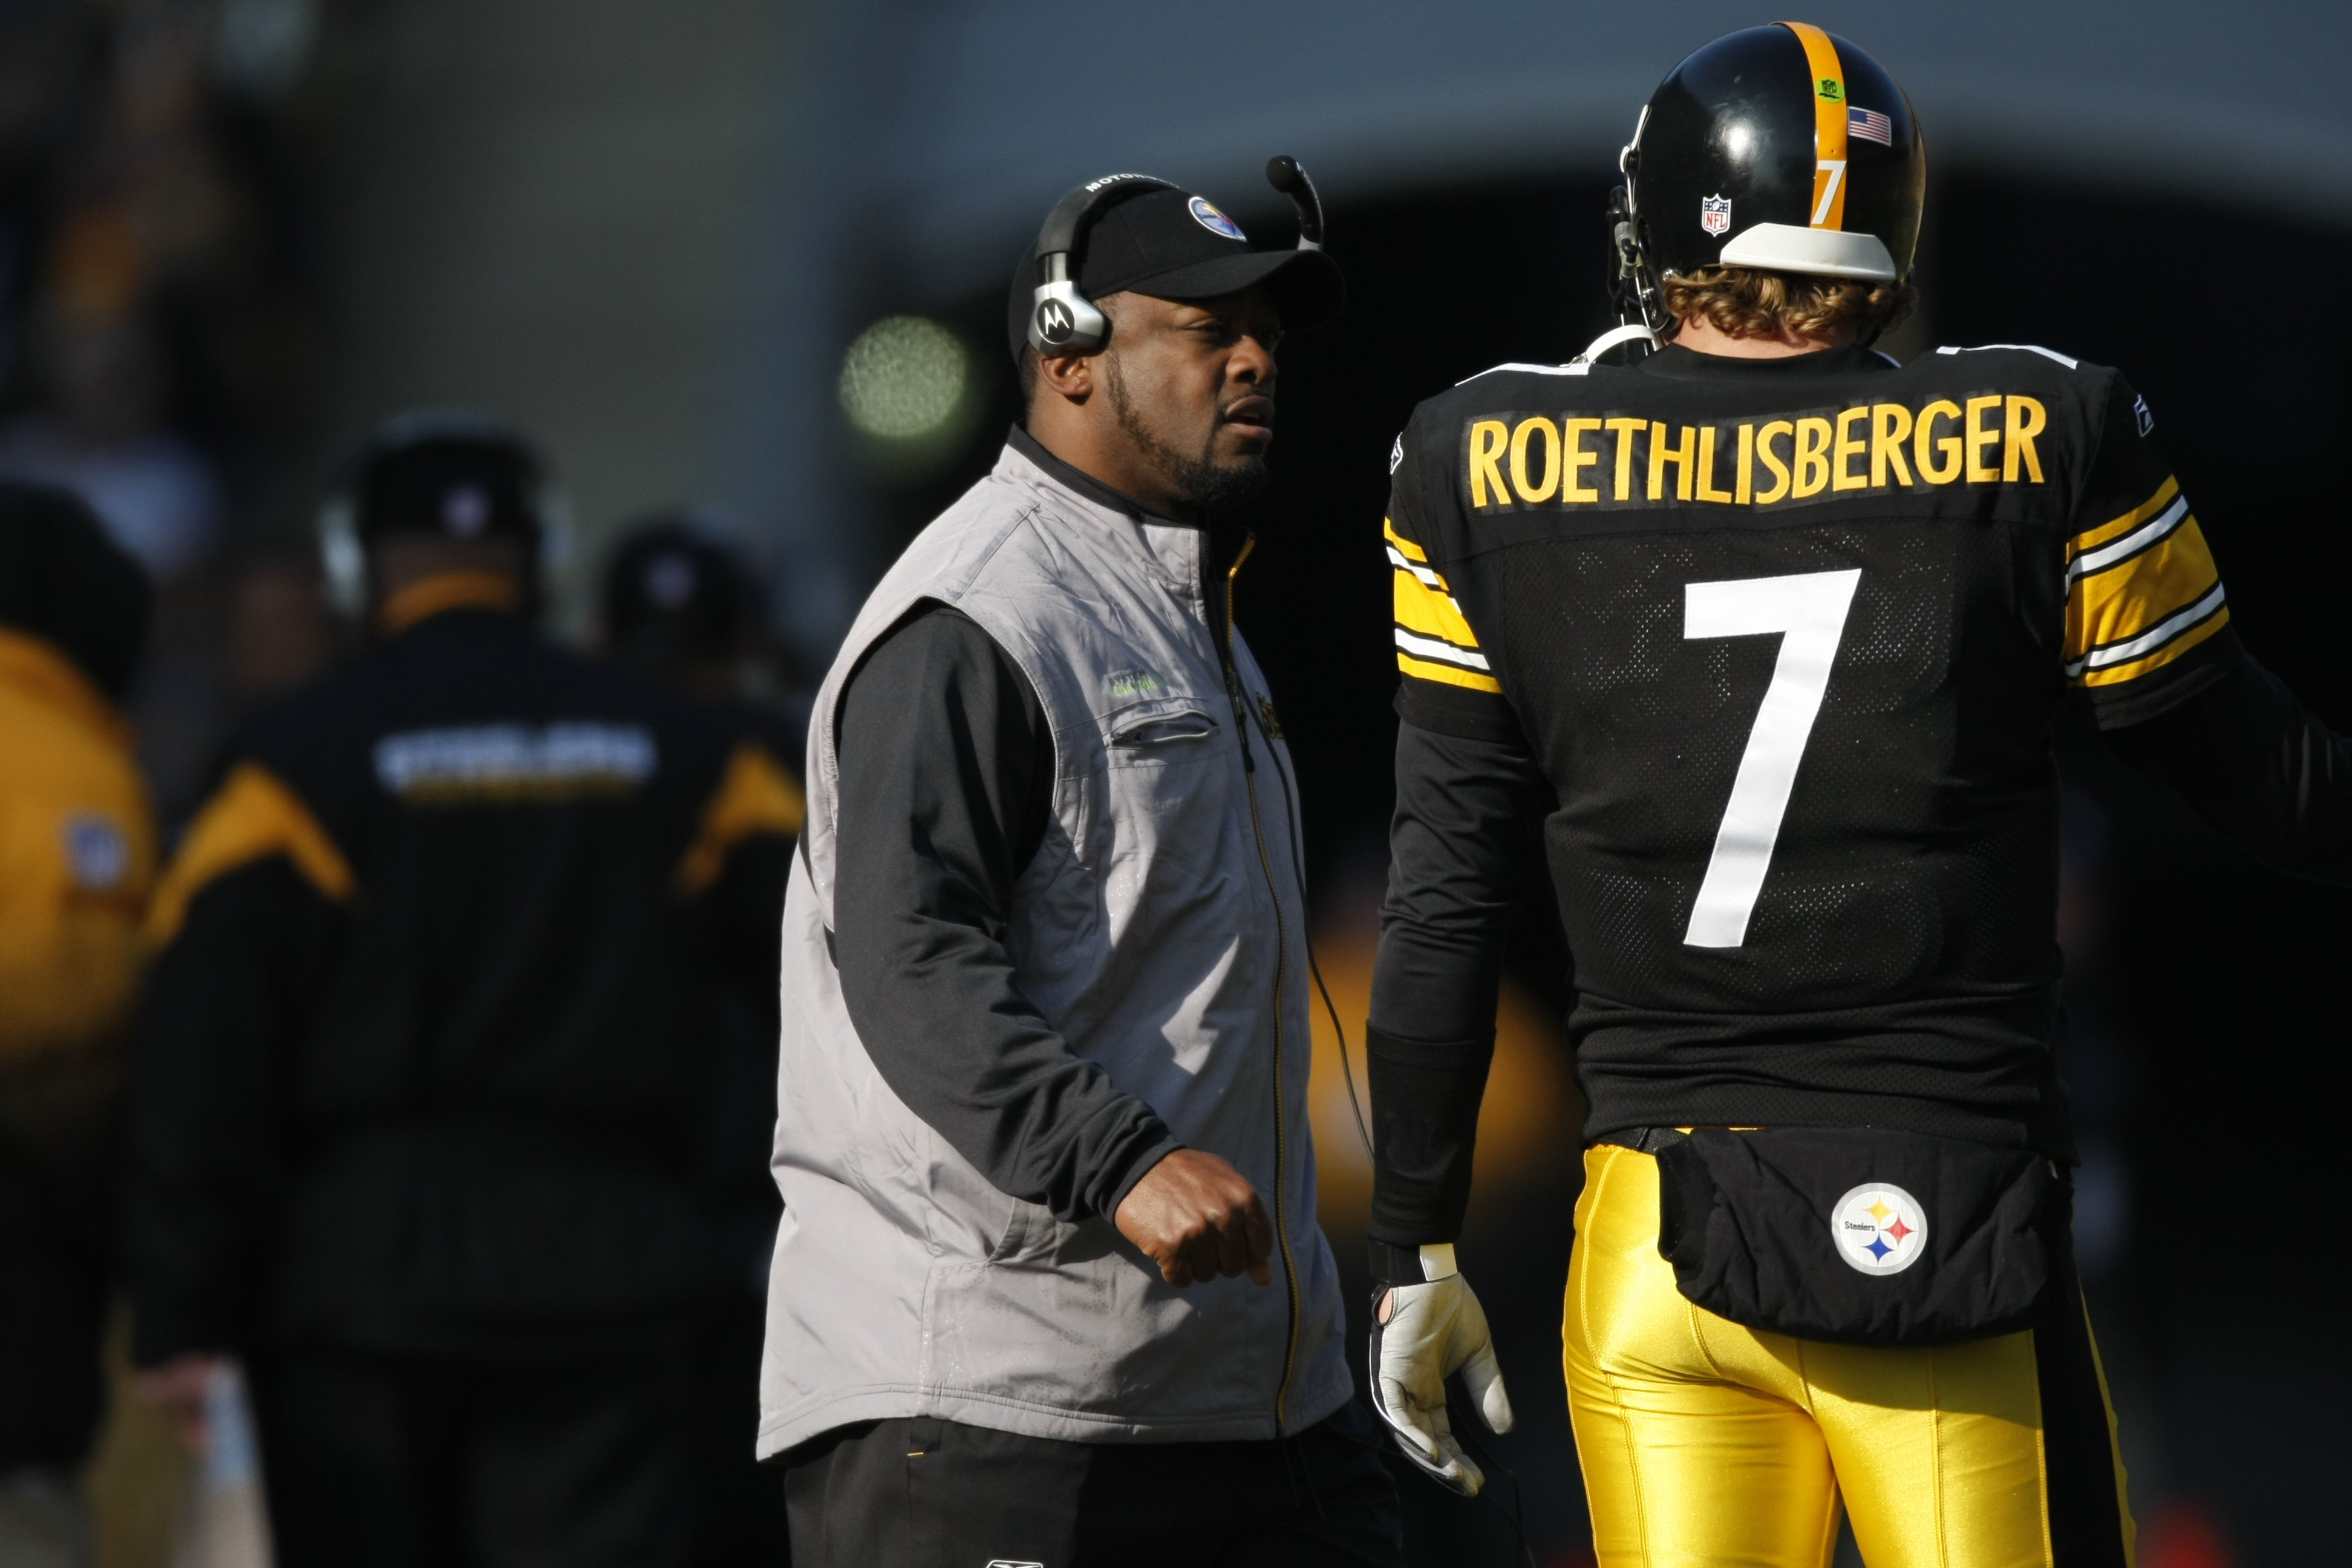 PITTSBURGH - DECEMBER 06:  Head coach Mike Tomlin of the Pittsburgh Steelers speaks with Ben Roethlisberger #7 during the game against the Oakland Raiders on December 6, 2009 at Heinz Field in Pittsburgh, Pennsylvania.  (Photo by Gregory Shamus/Getty Imag